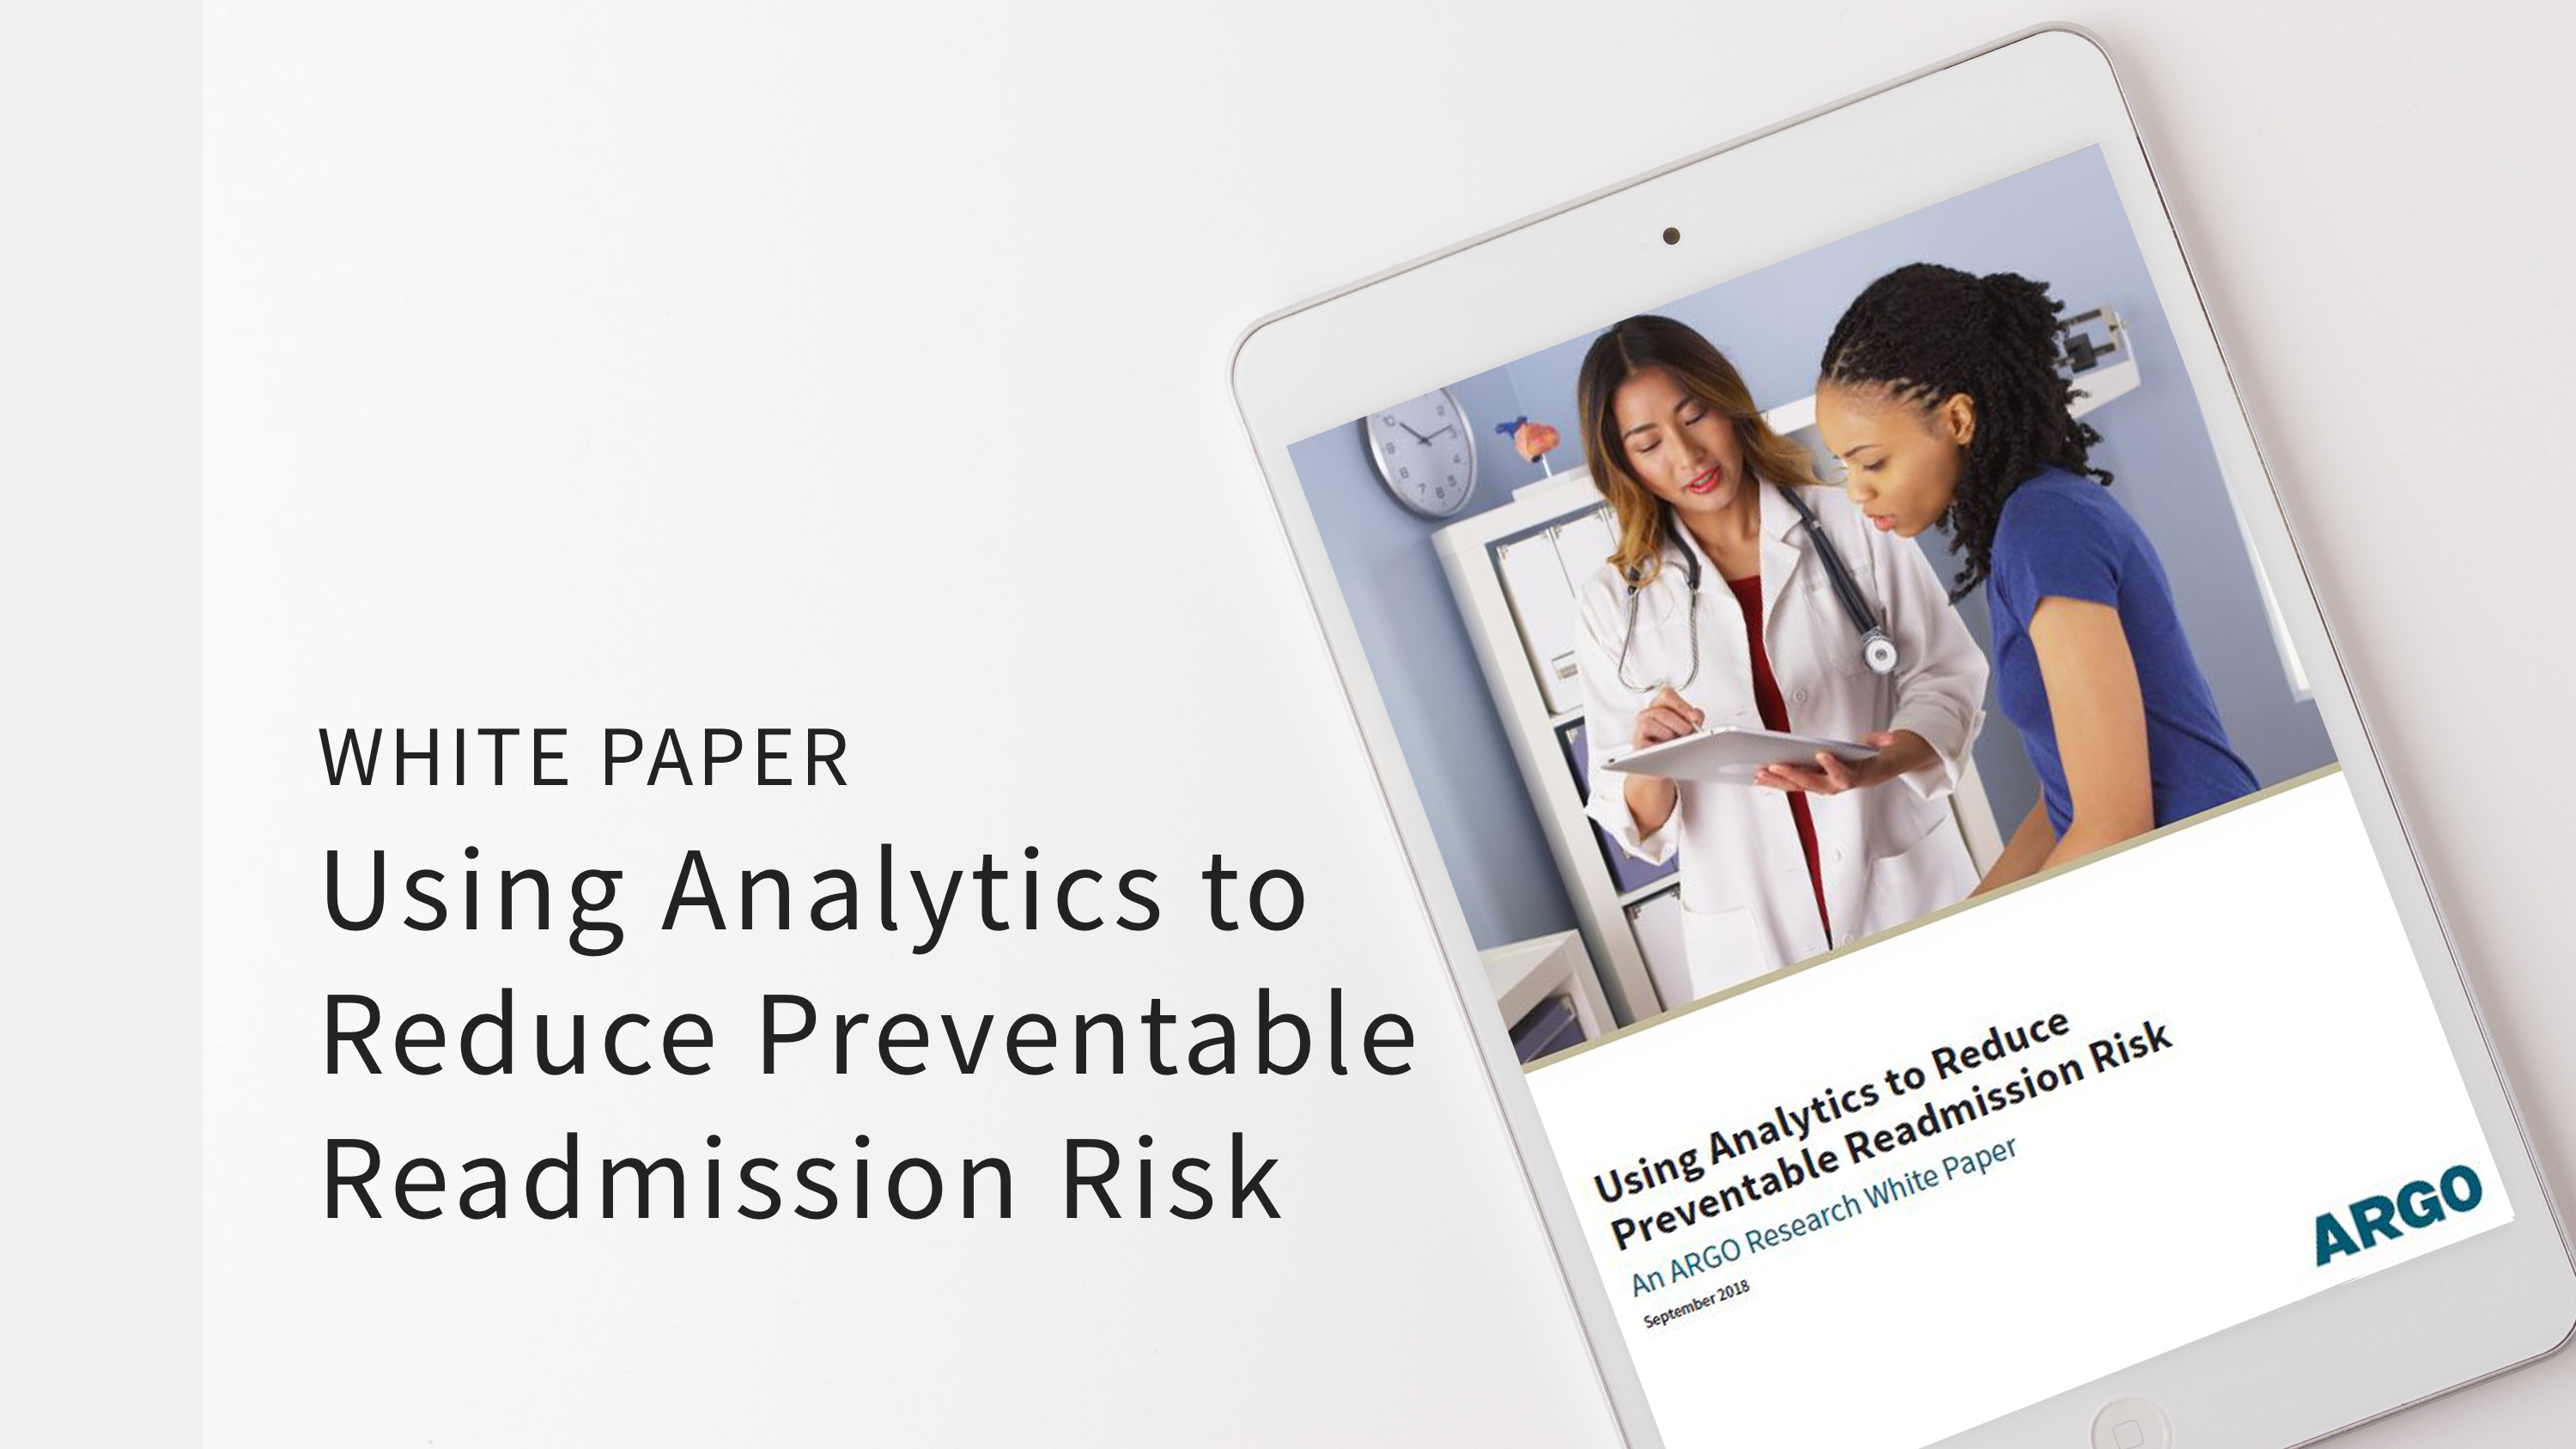 WP Using Analytics to Reduce Readmission